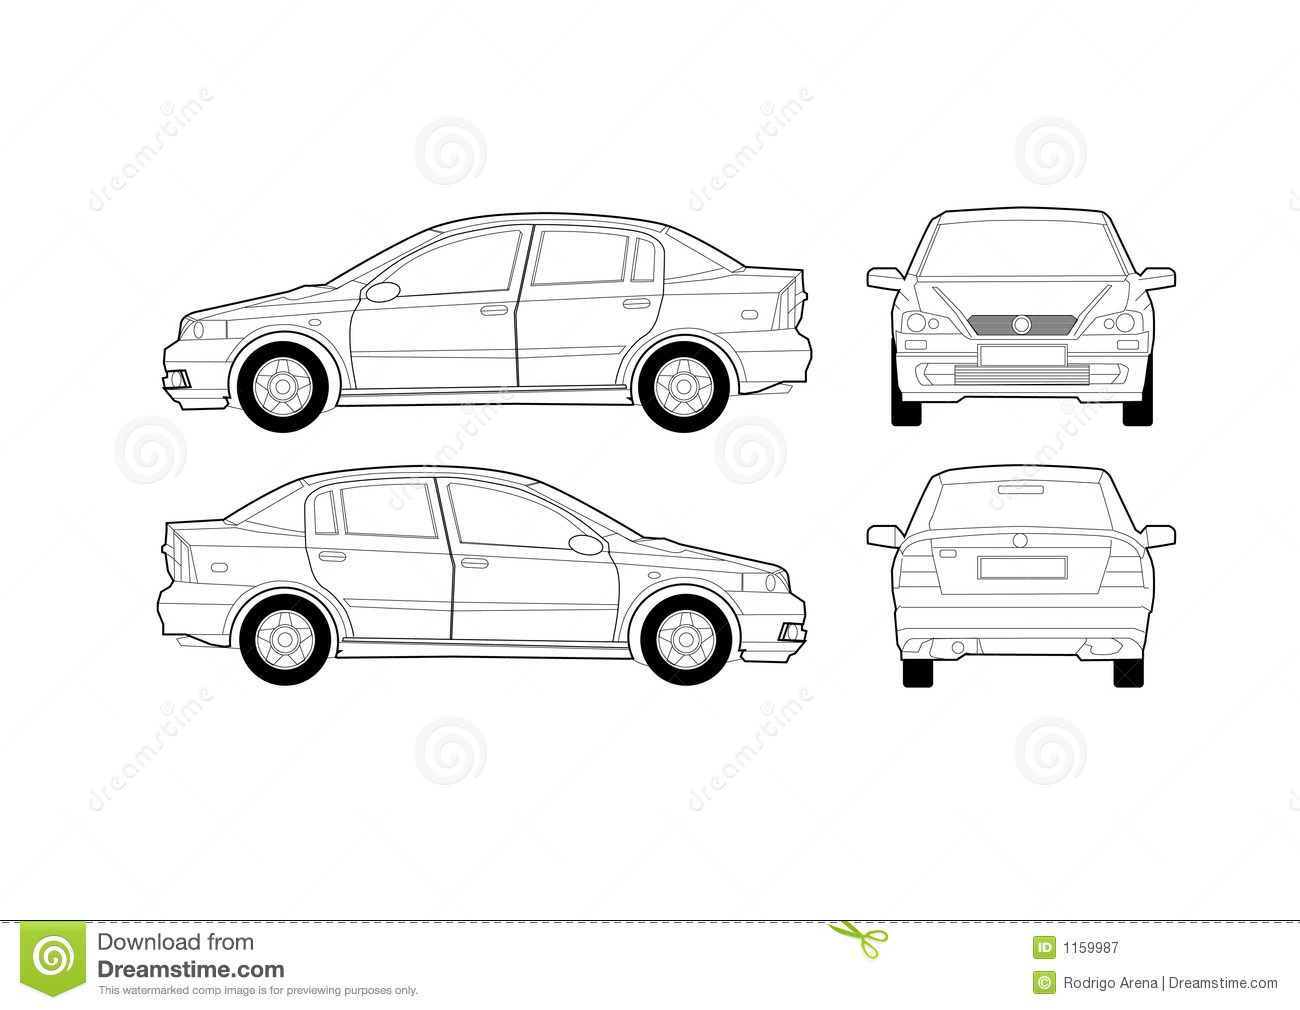 Generic Saloon Car Diagram stock vector. Illustration of carry - 1159987